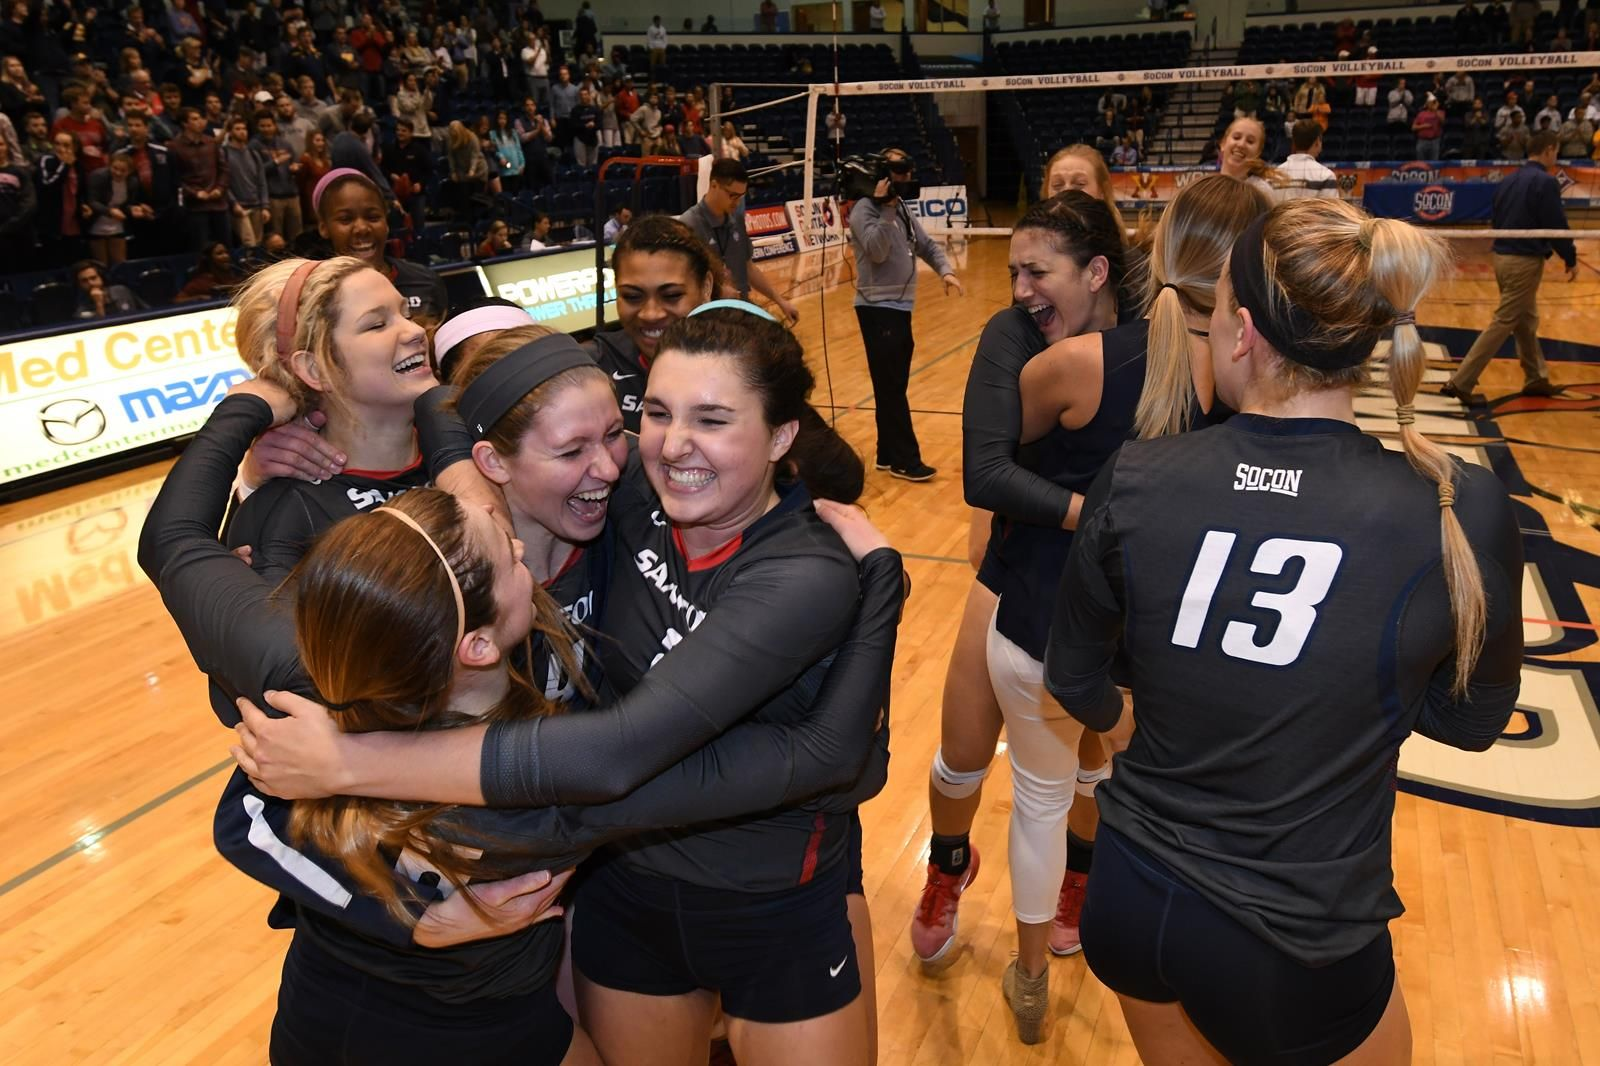 Samford Volleyball Announces 2017 Schedule Volleyball Volleyball News Volleyball Team